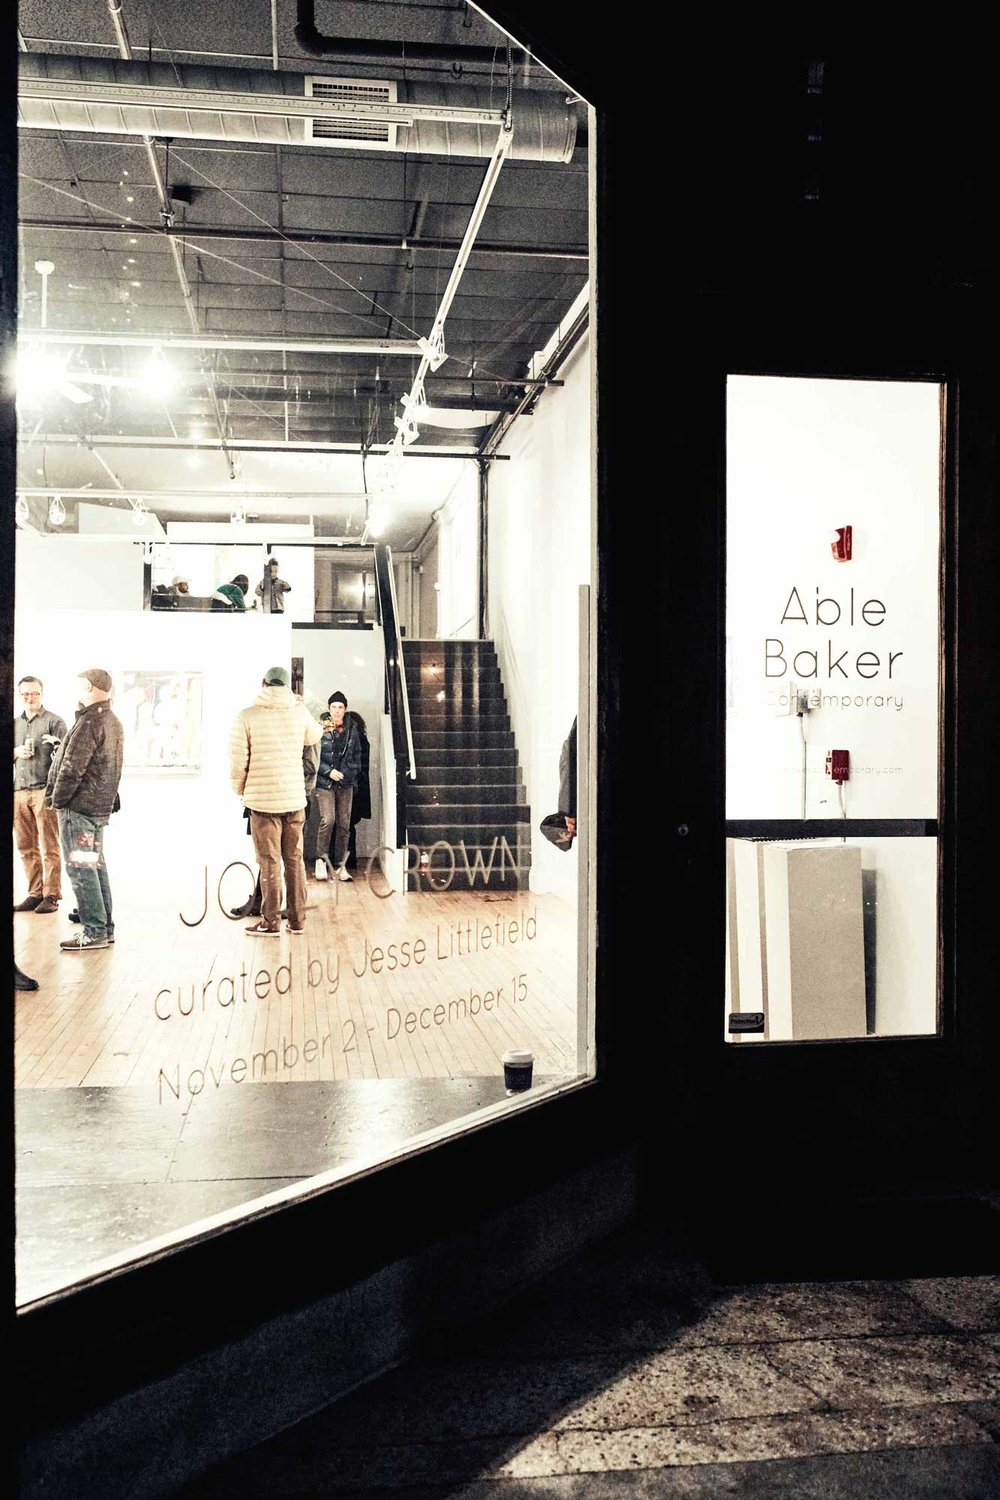 Able Baker Contemporary features group shows curated by artists.